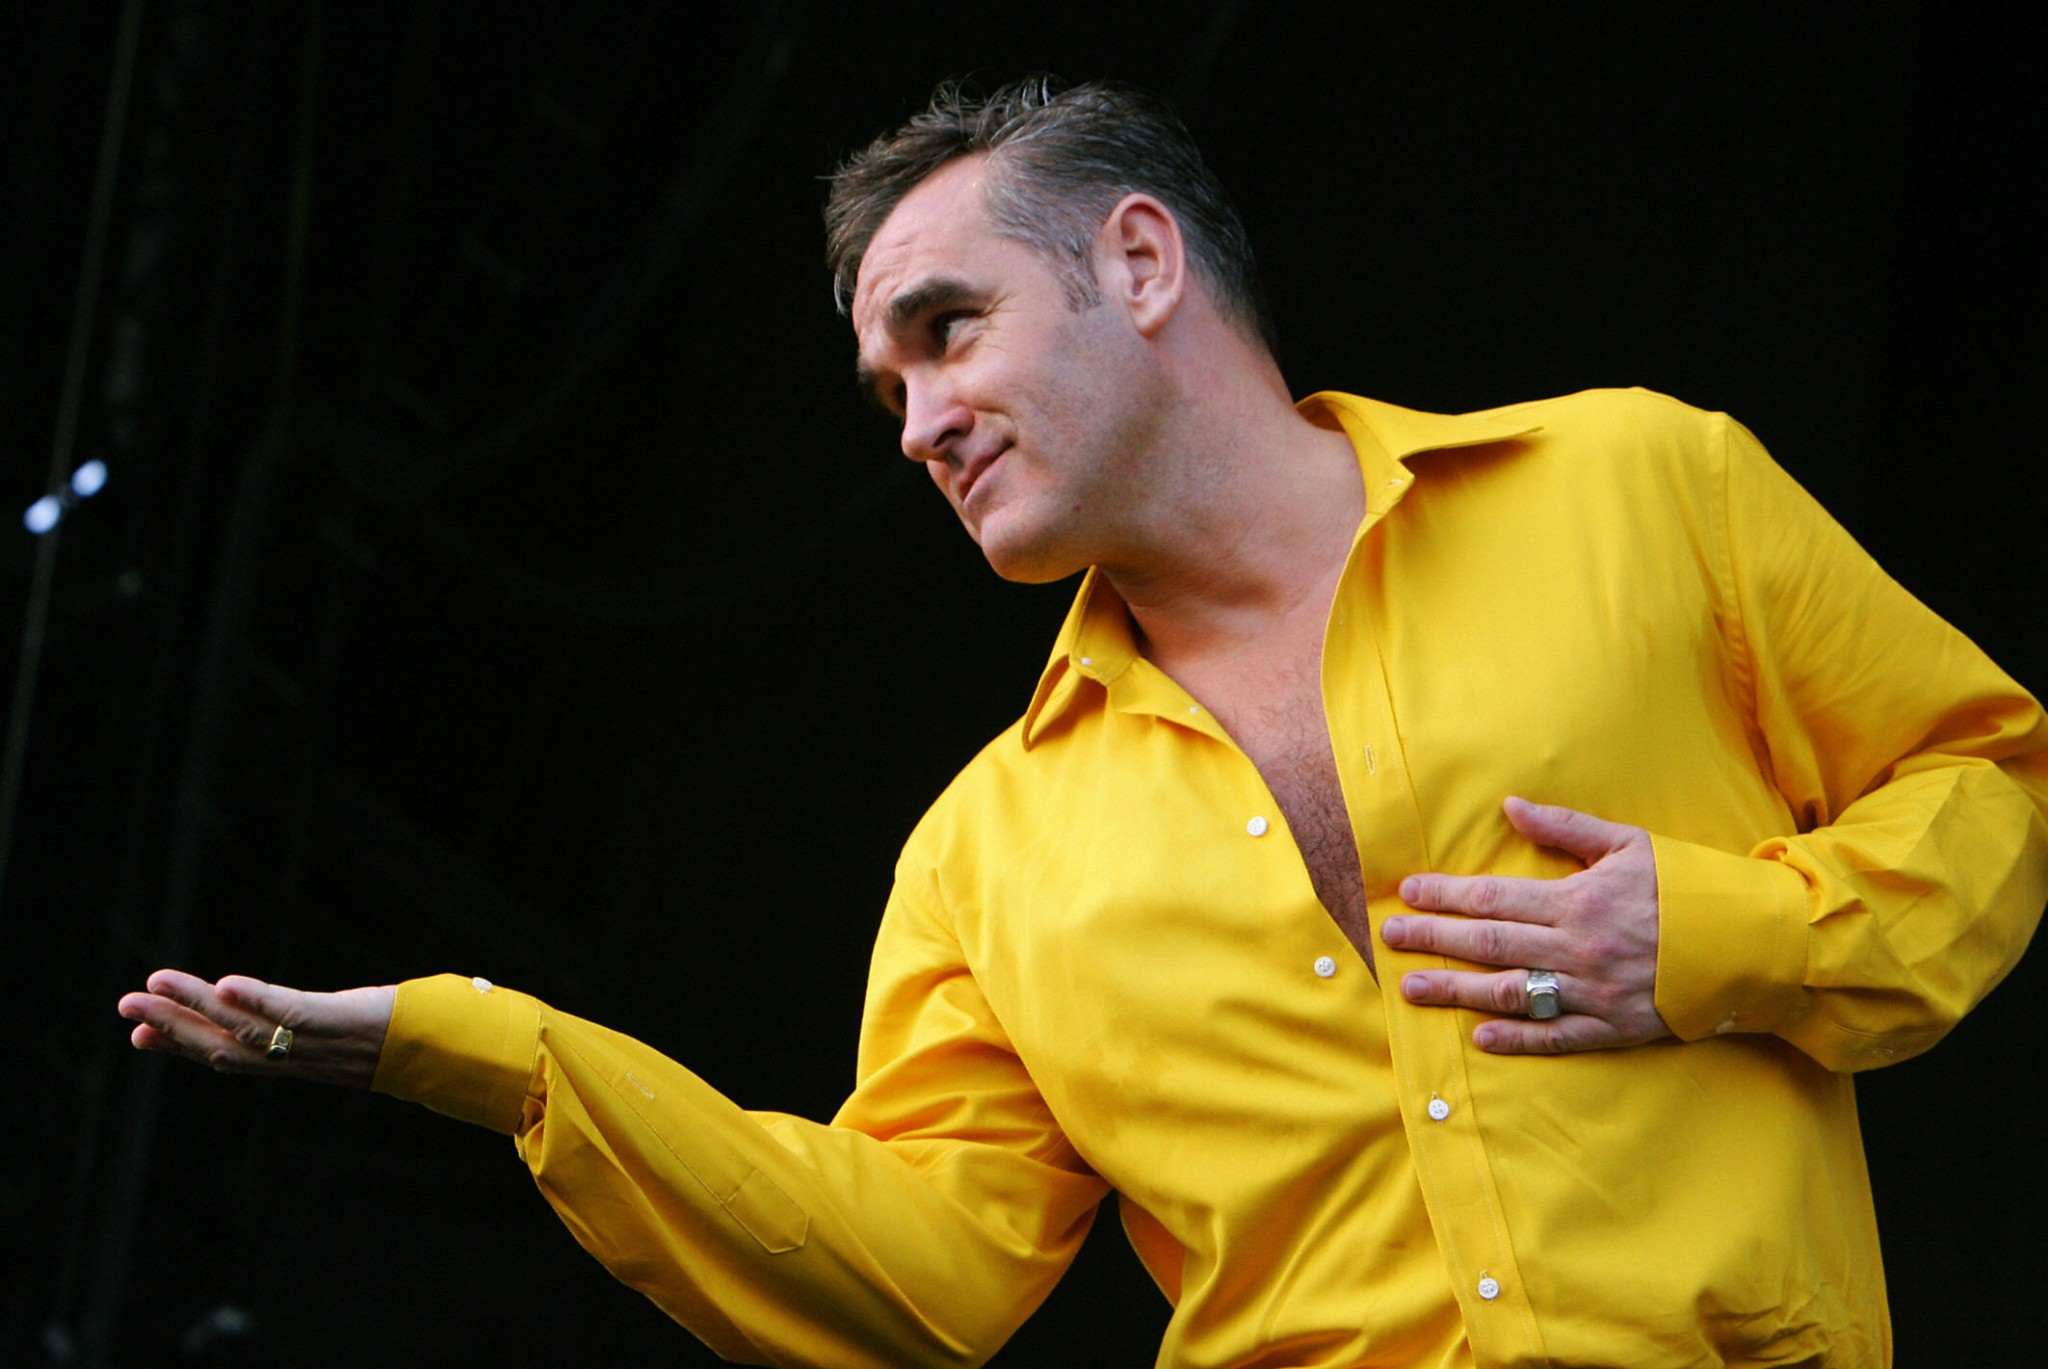 Morrissey pictured onstage has now turned to being an author